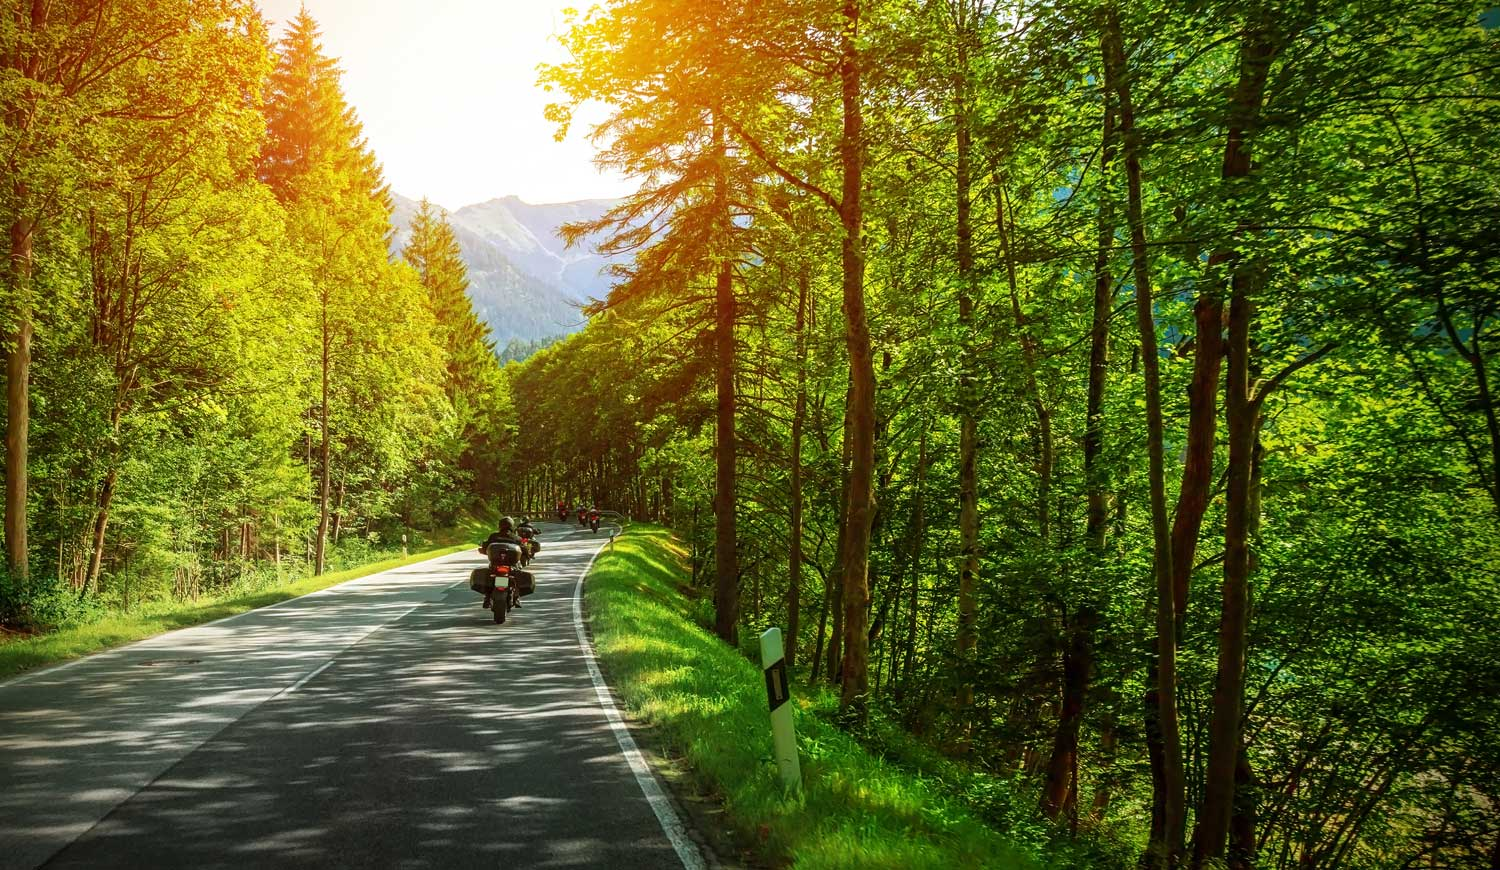 Bikers on a road lined with trees